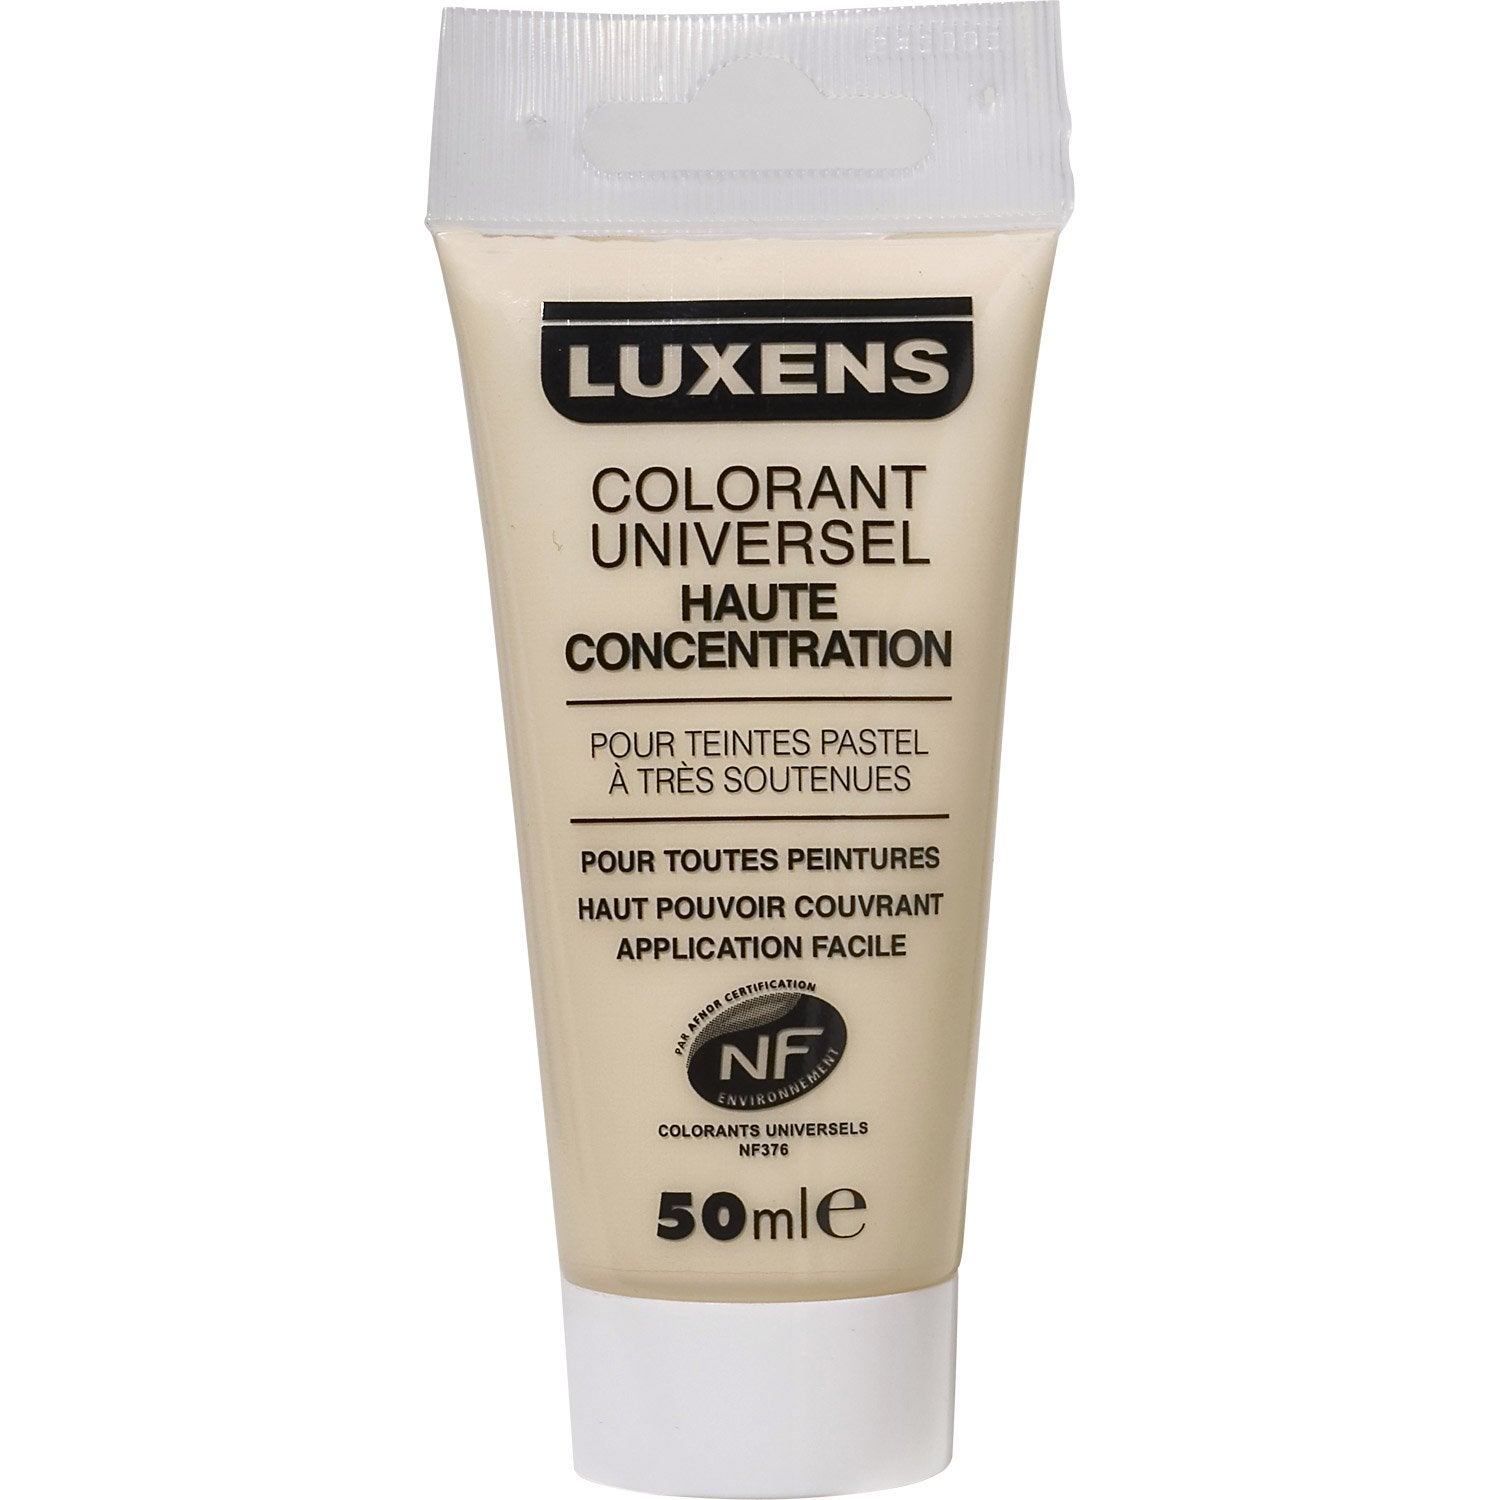 colorant concentr blanc ivoire 50 ml luxens leroy merlin - Colorants Universels Pour Peinture